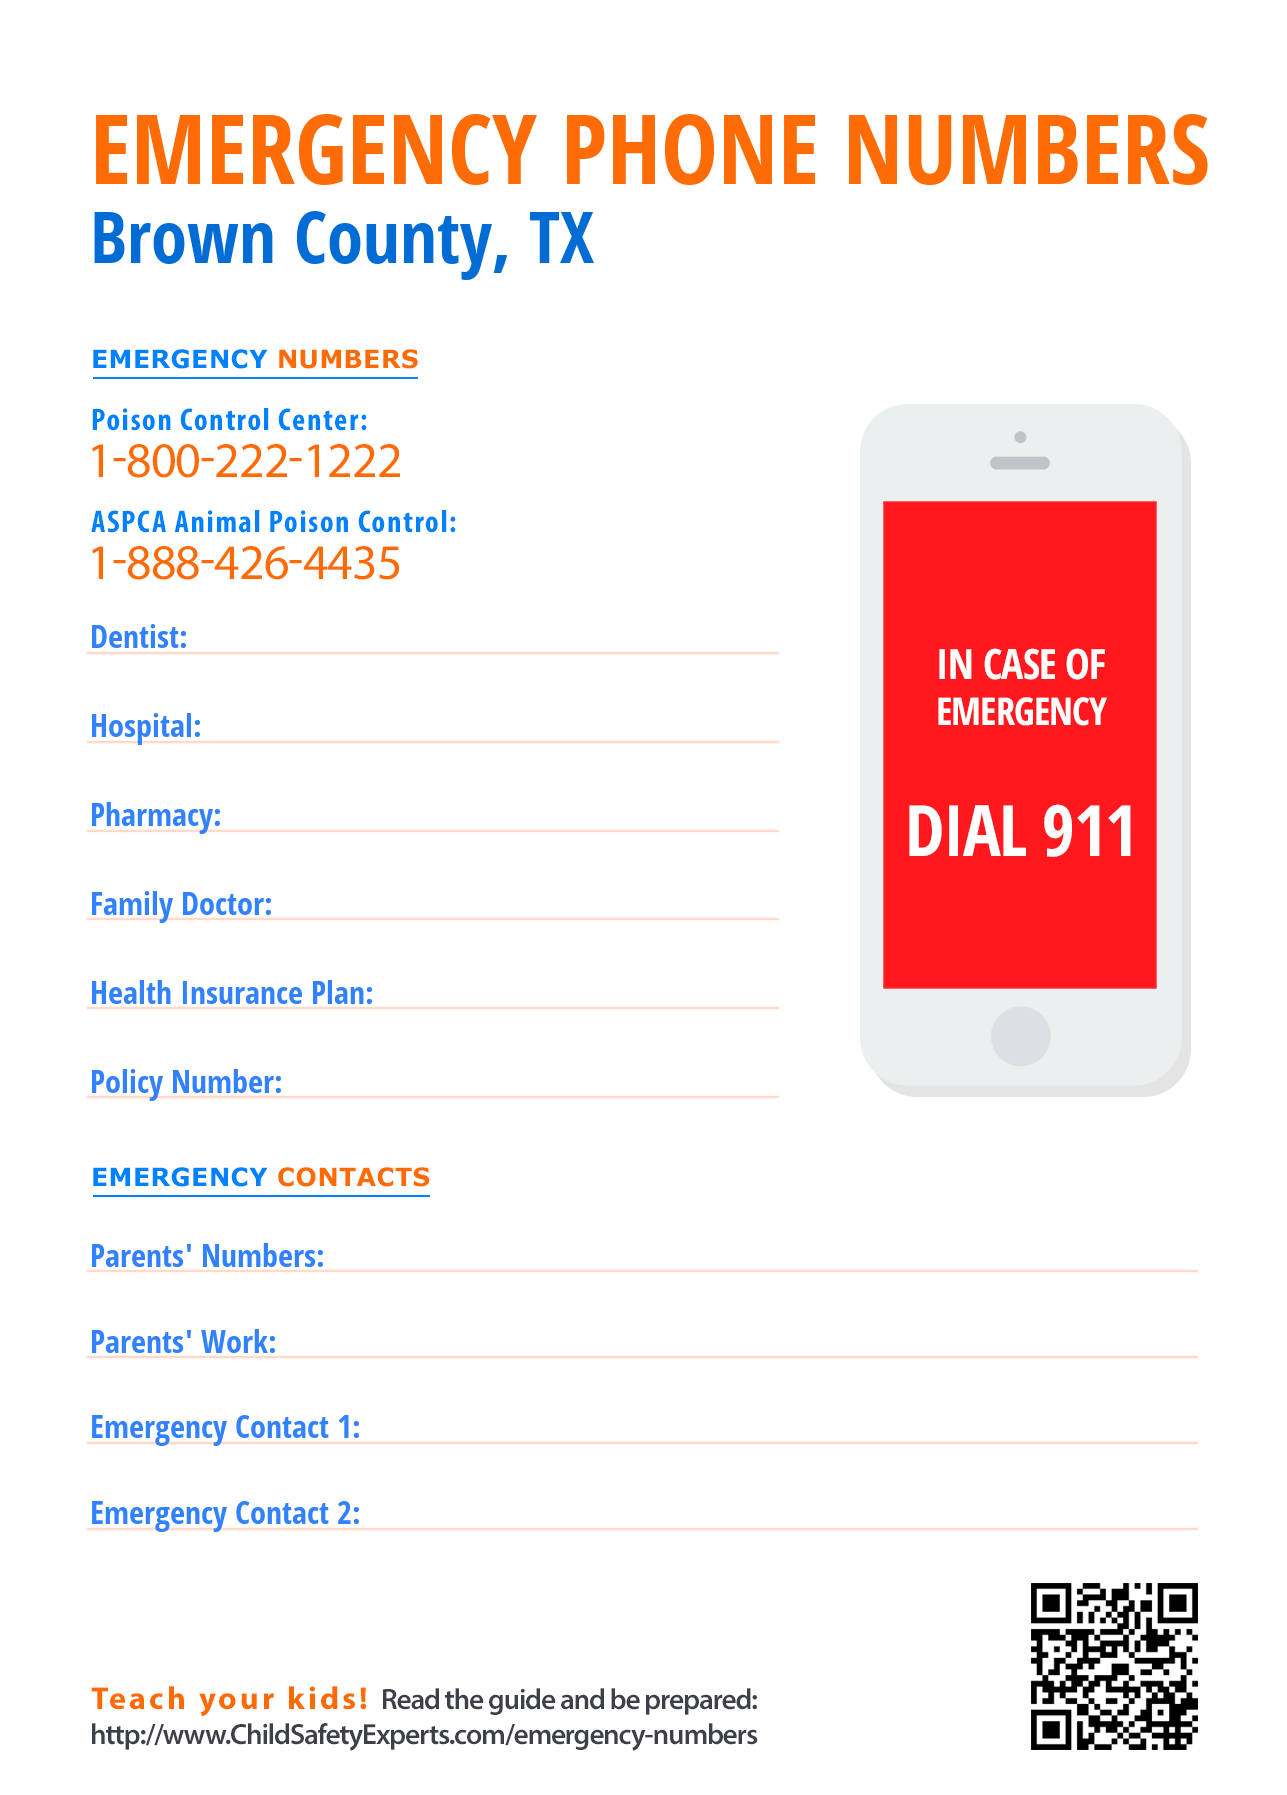 Important emergency phone numbers in Brown County, Texas